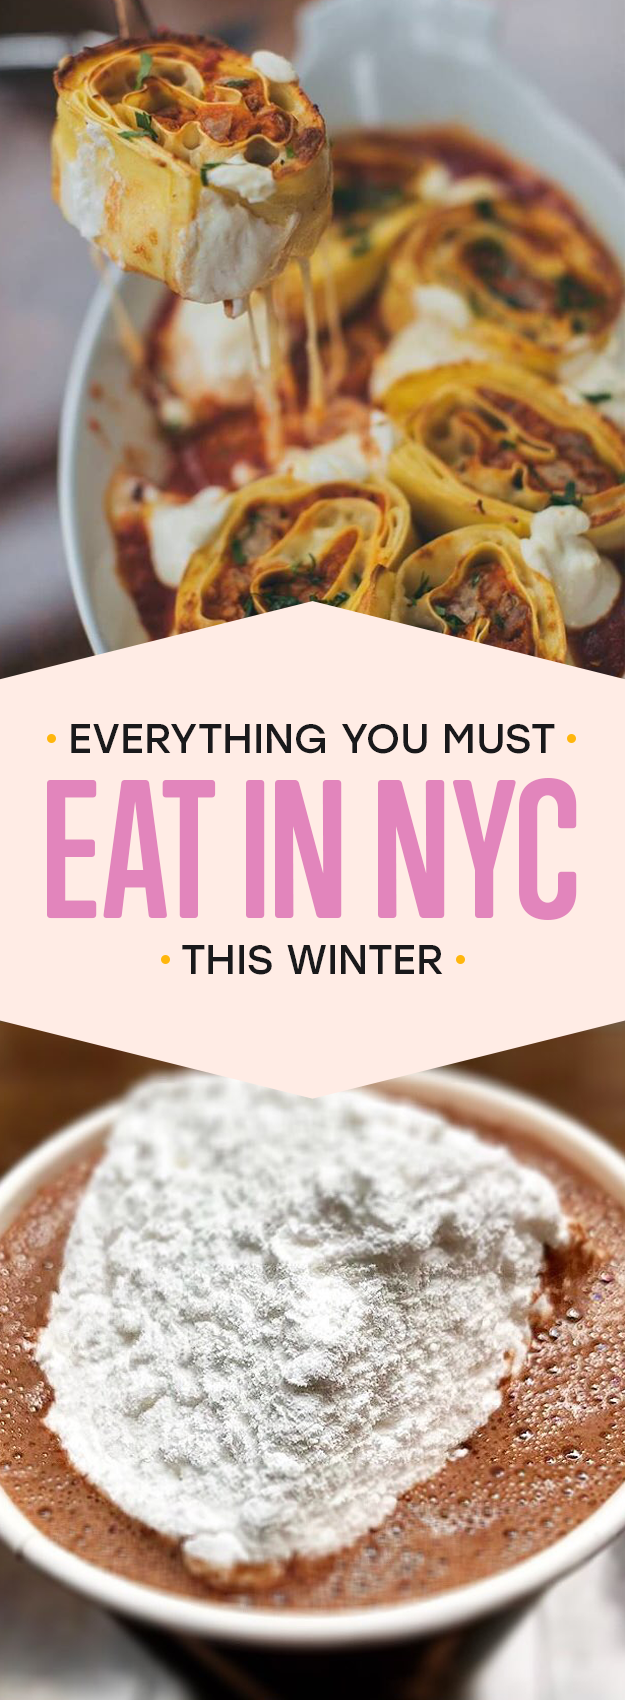 30 Insanely Delicious NYC Eats To Try Before Winter Ends